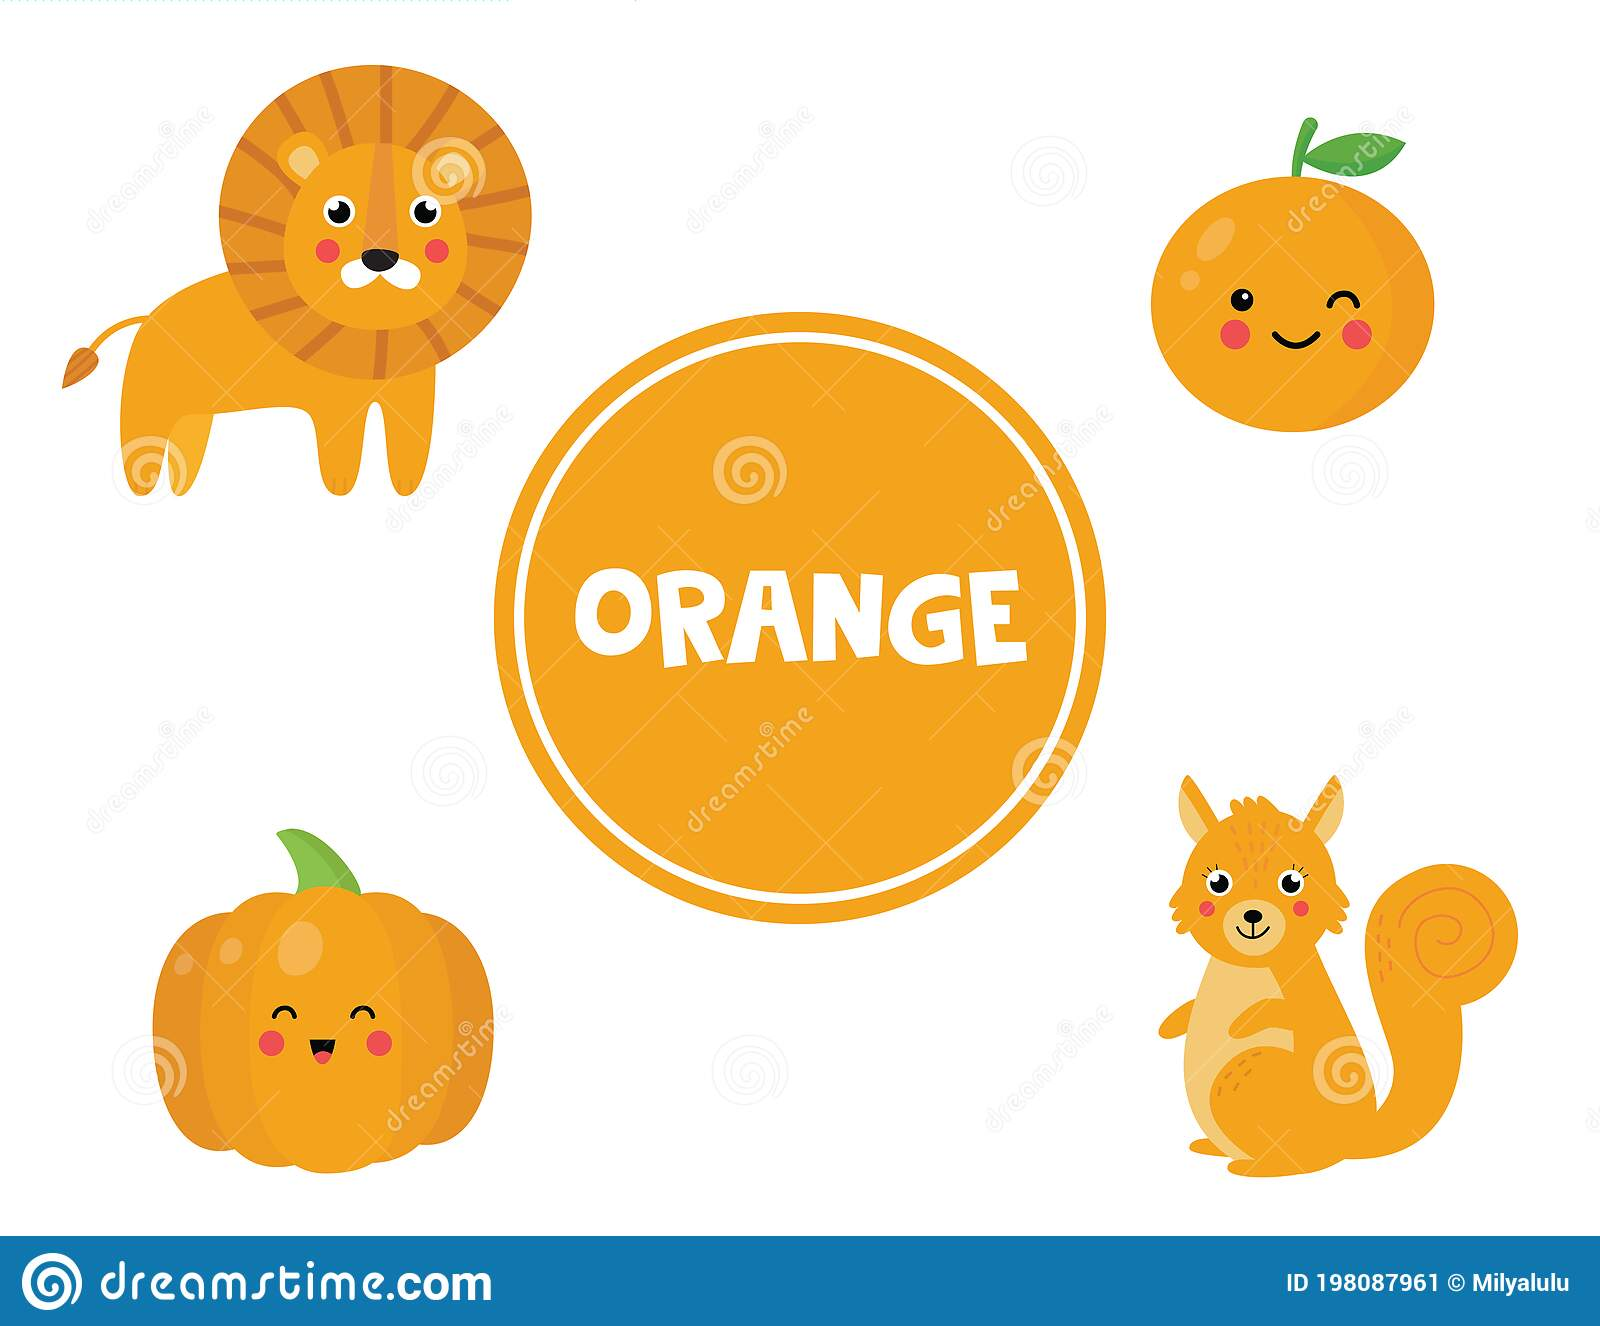 Learning Orange Color For Preschool Kids Educational